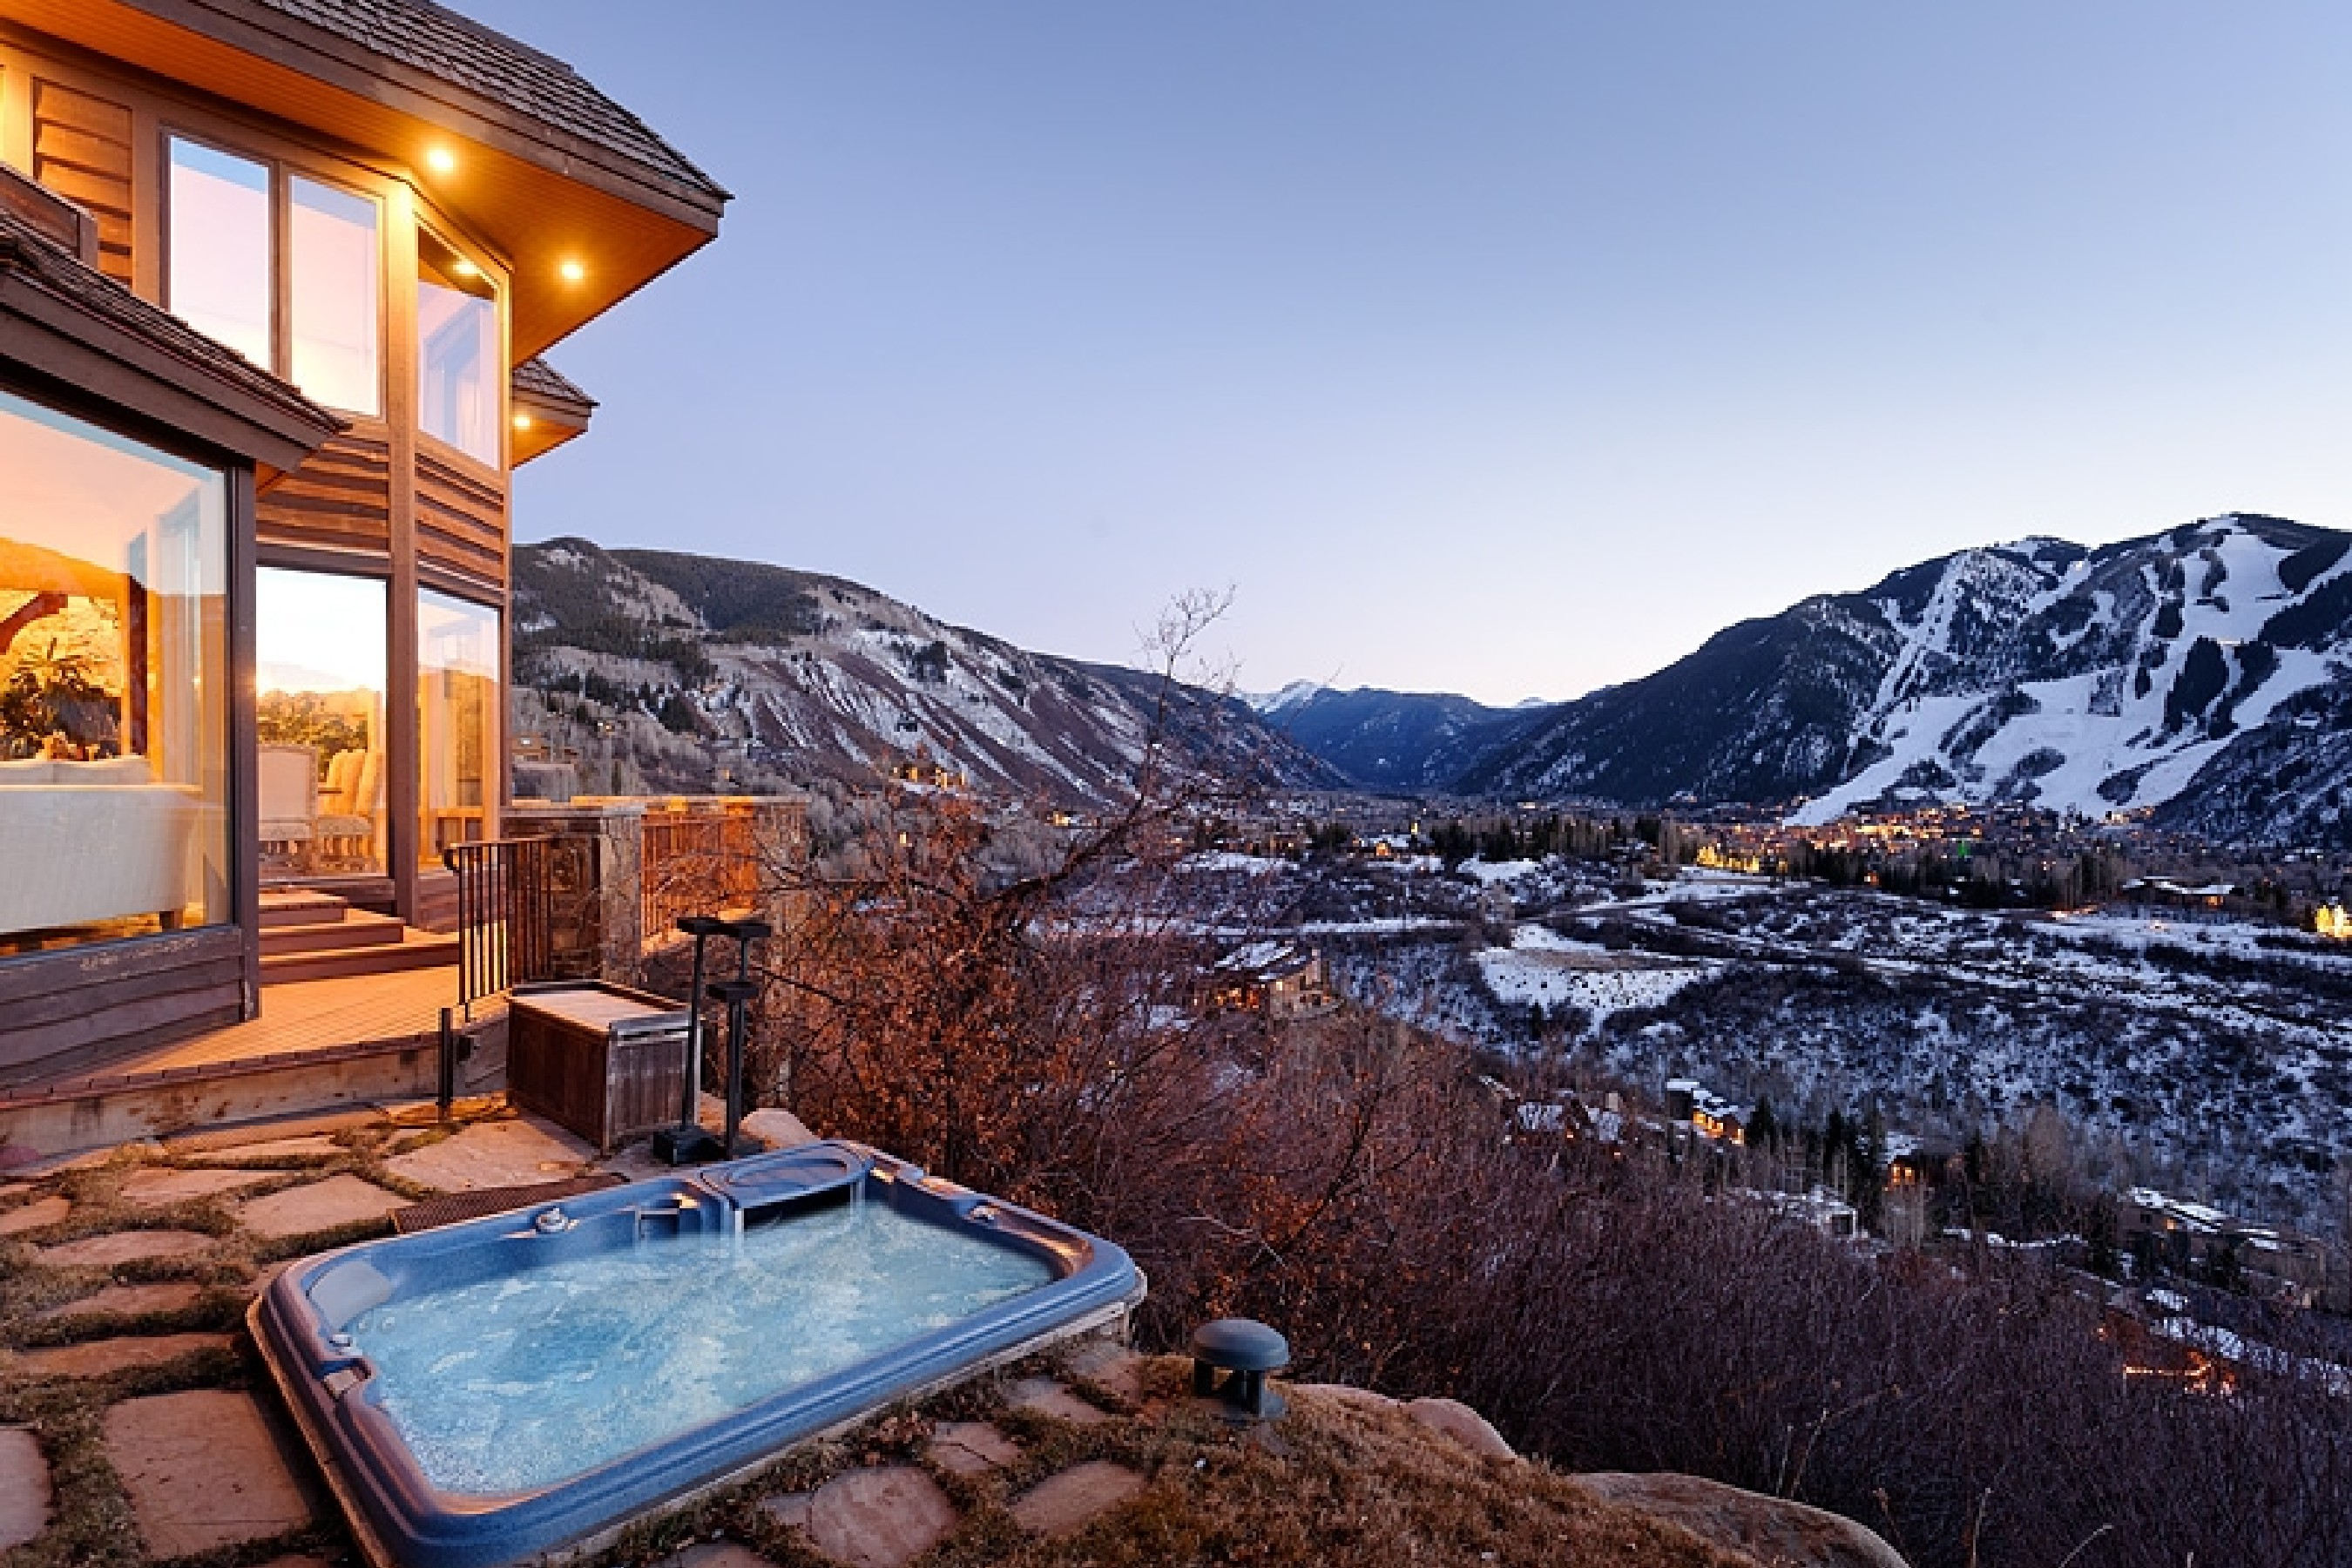 단독 가정 주택 용 매매 에 Privacy and Views on Red Mountain 476 Wrights Road Red Mountain, Aspen, 콜로라도, 81611 미국